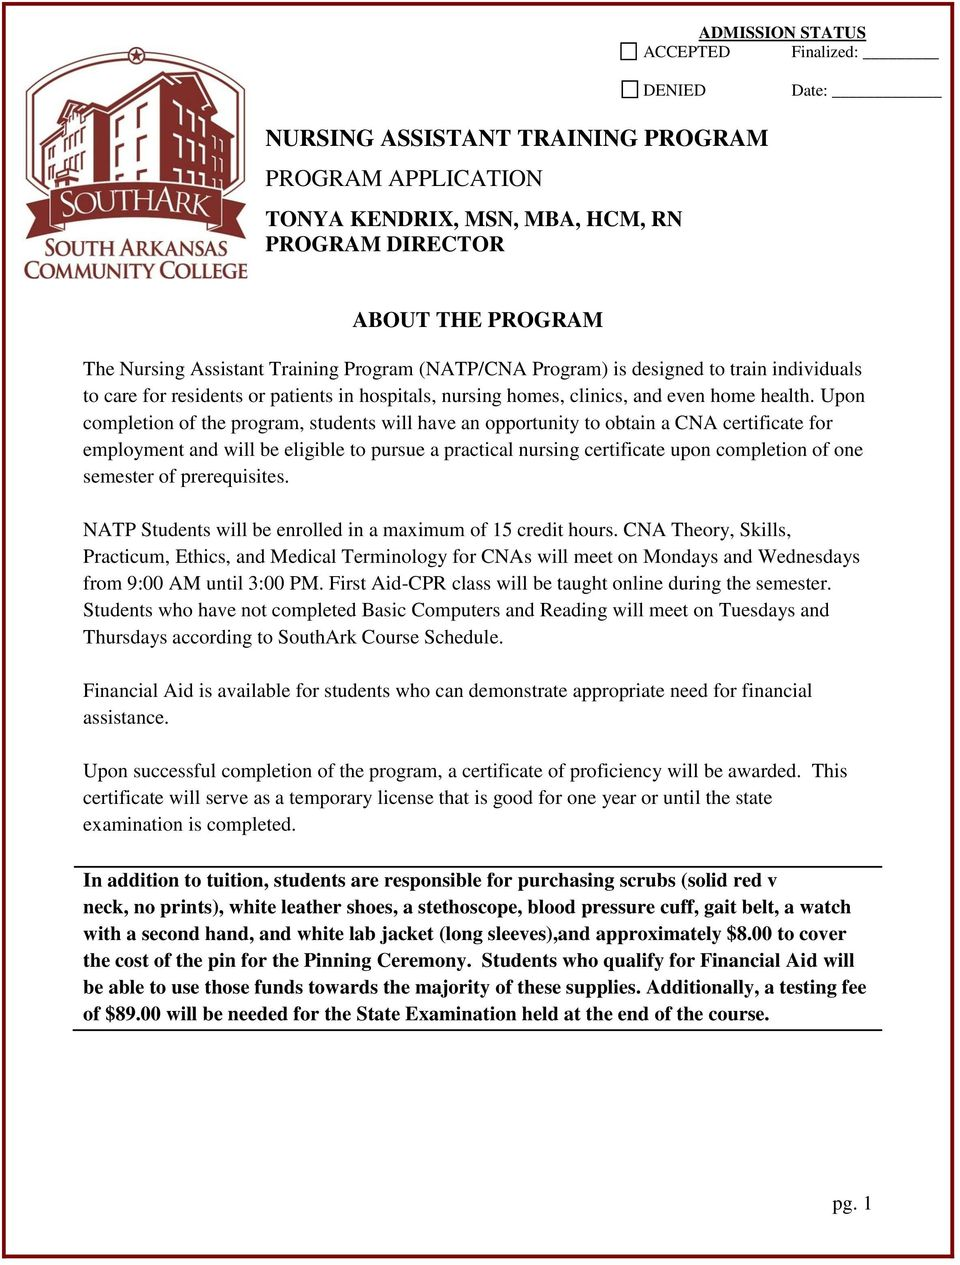 Nursing Assistant Training Program Program Application Pdf